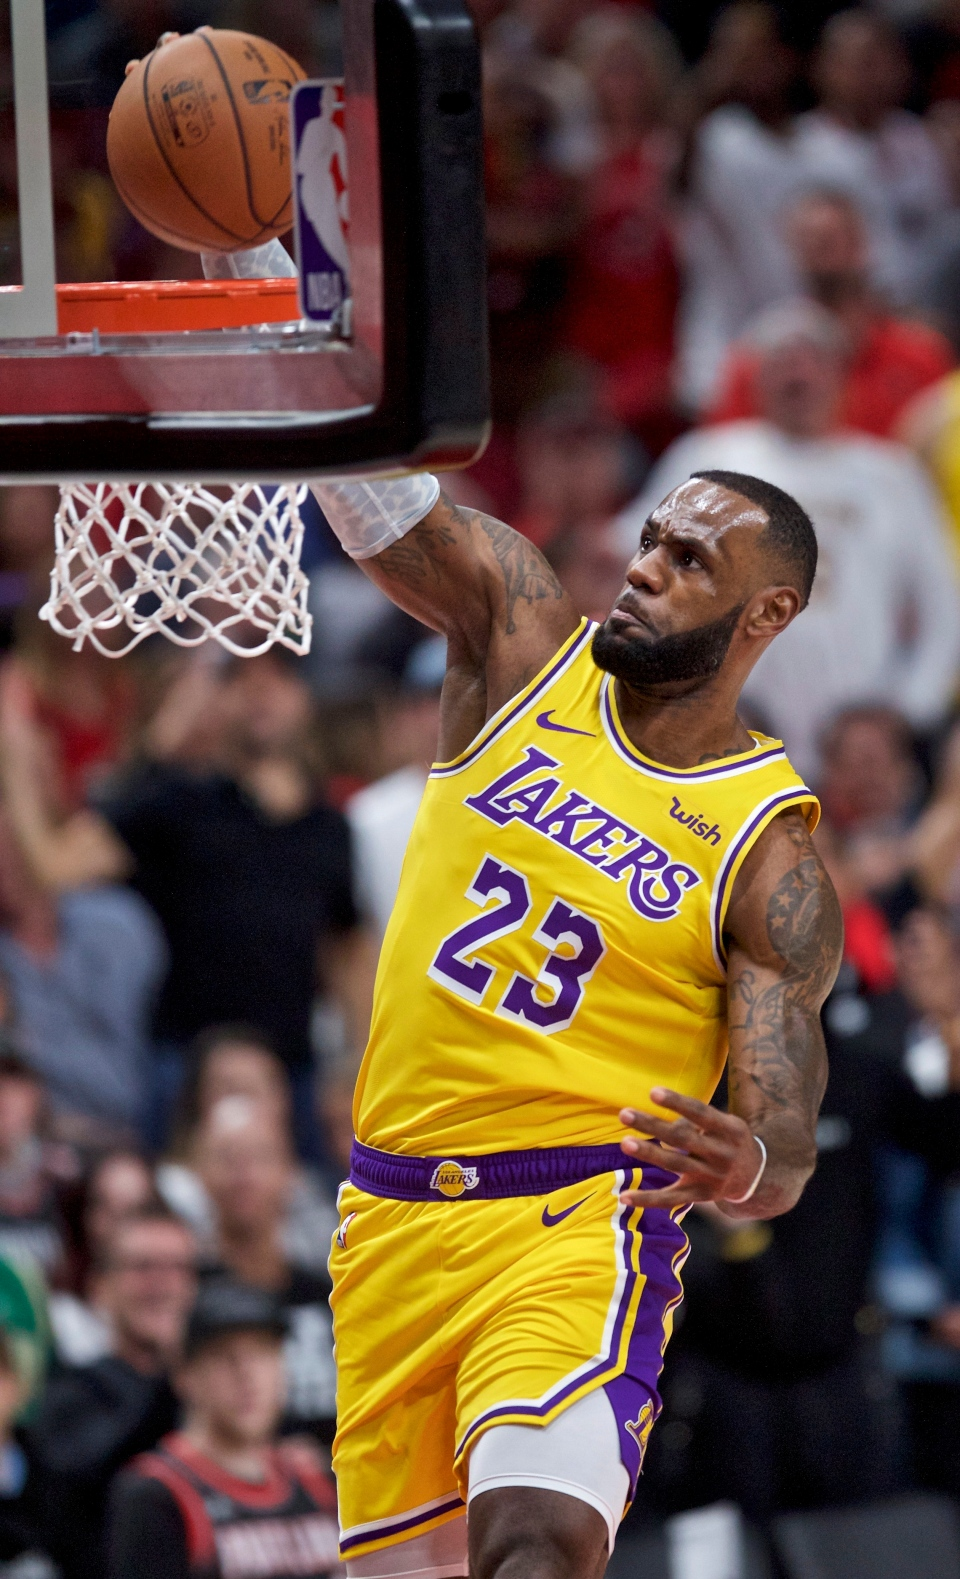 f15a466d5d1 Los Angeles Lakers forward LeBron James dunks against the Portland Trail  Blazers during the first half of an NBA basketball game in Portland, Ore.,  ...